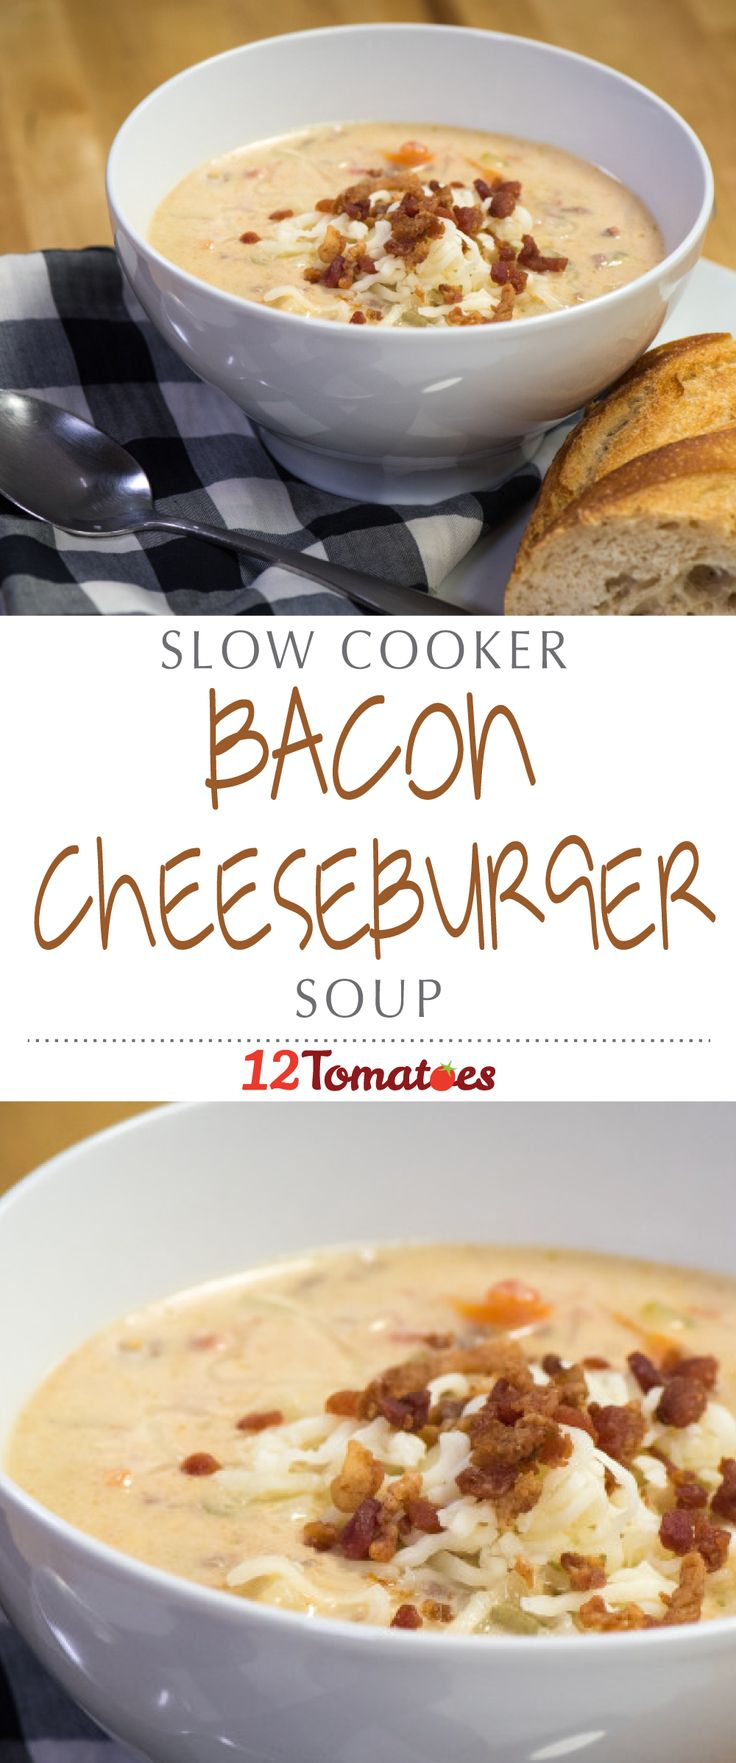 Slow Cooker Bacon Cheeseburger Soup | Packed with beef, veggies, cheese and bacon, is easy to make and your whole family will love it!